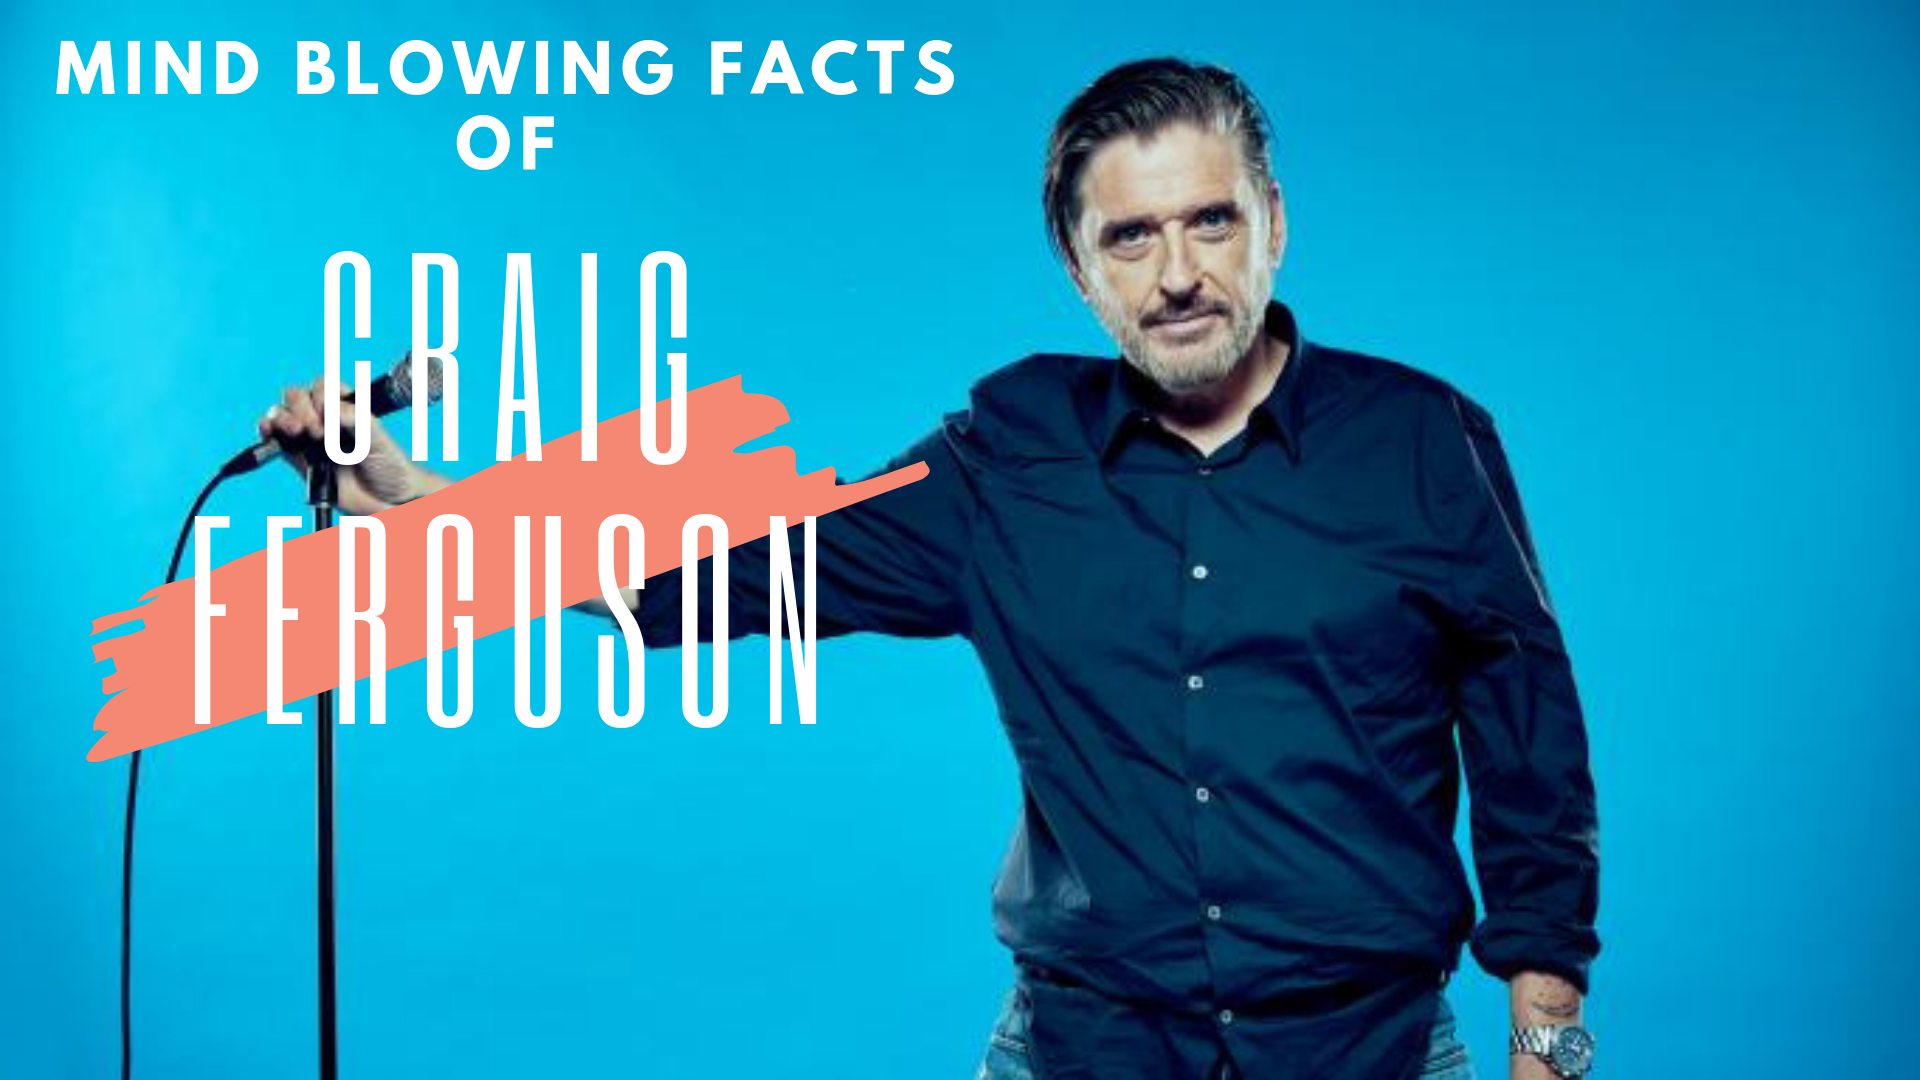 Craig Ferguson Facts